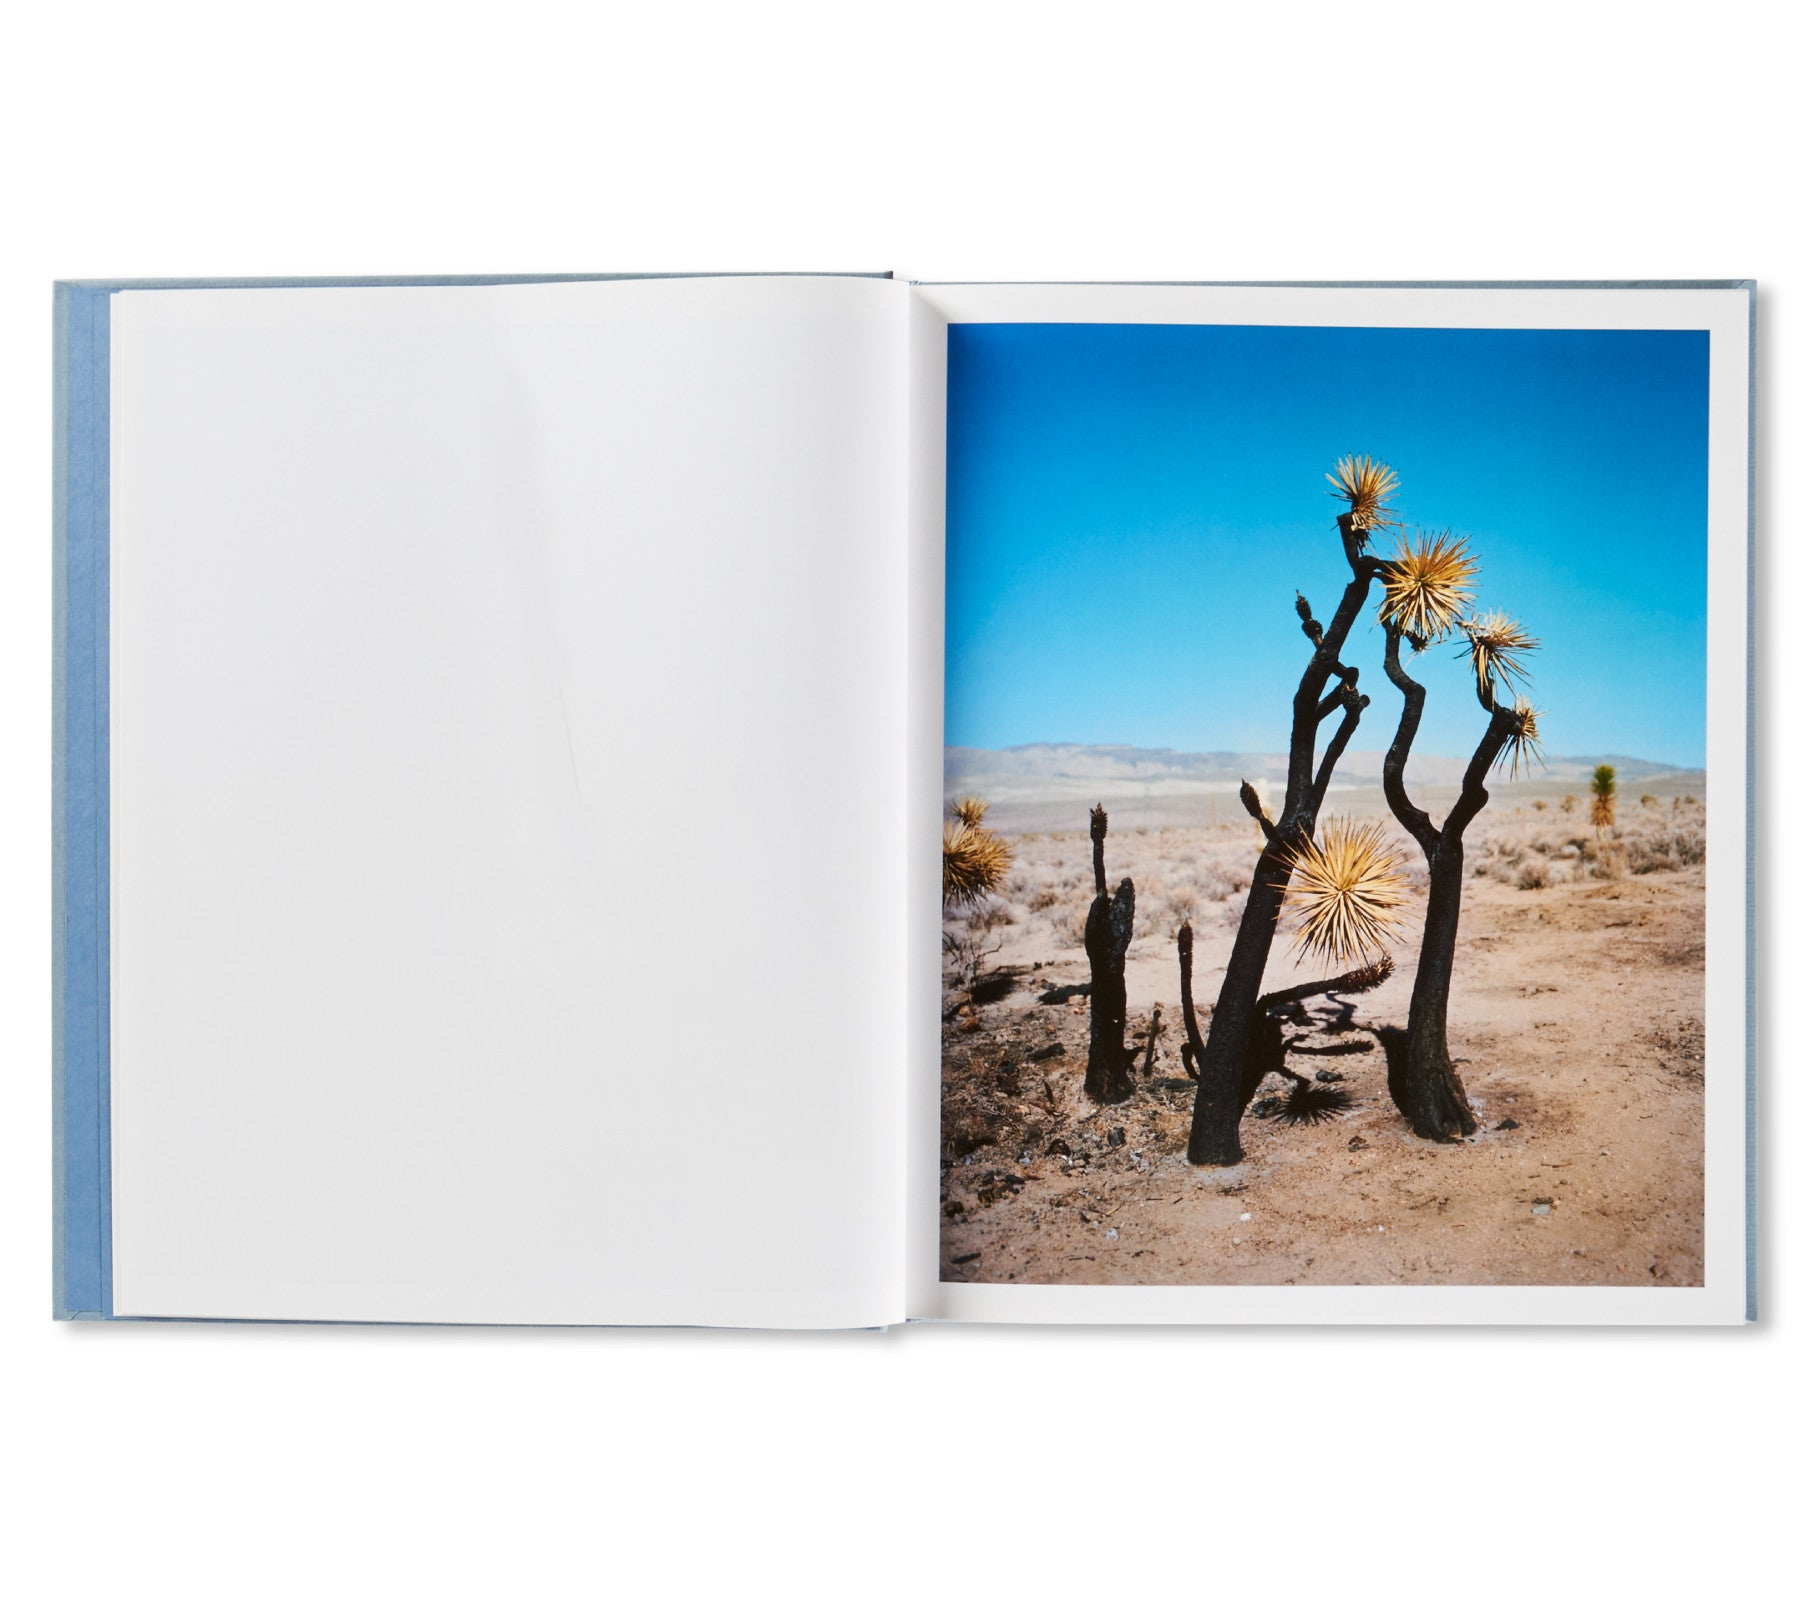 ZZYZX by Gregory Halpern [SPECIAL EDITION (HEAD) / SIGNED]